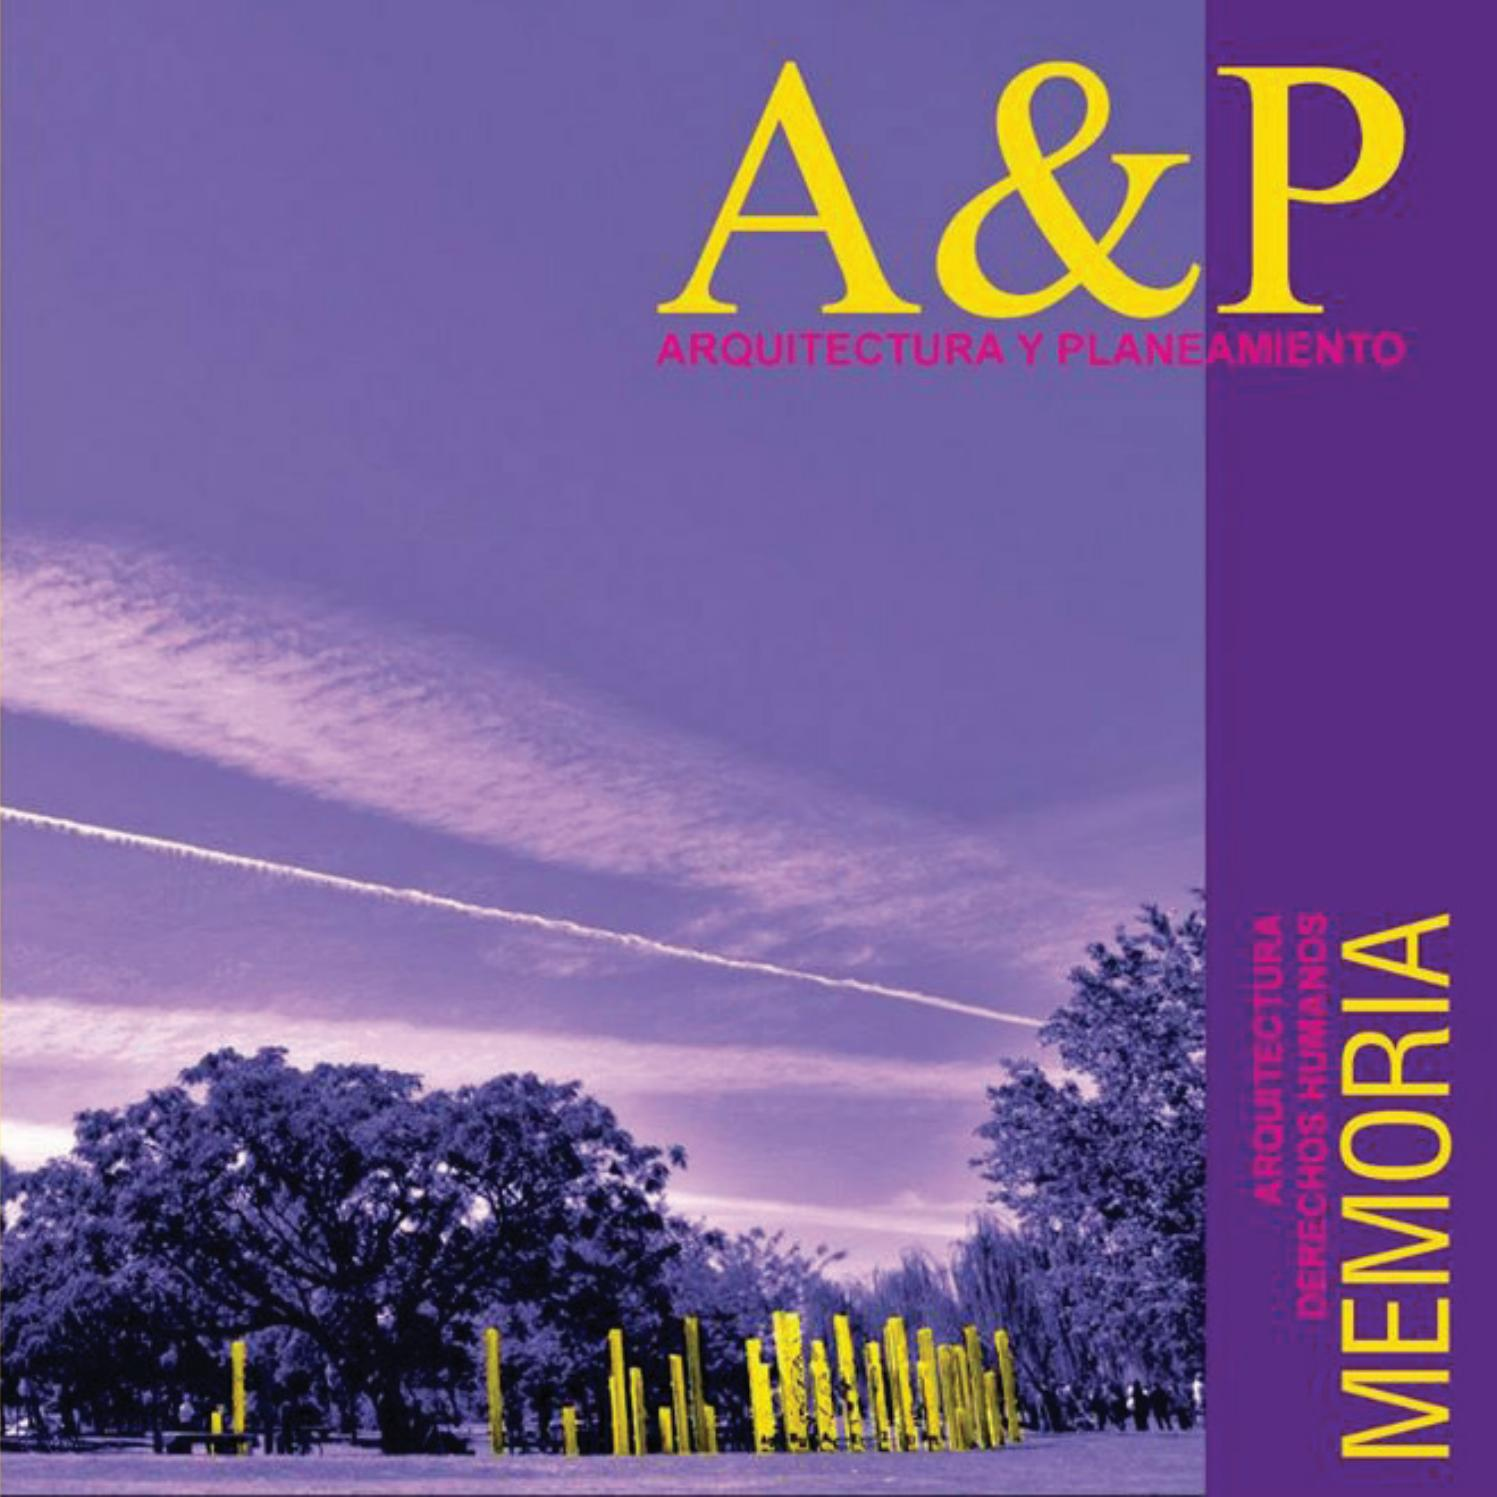 A&P Especiales #32 by FAPyD UNR - issuu